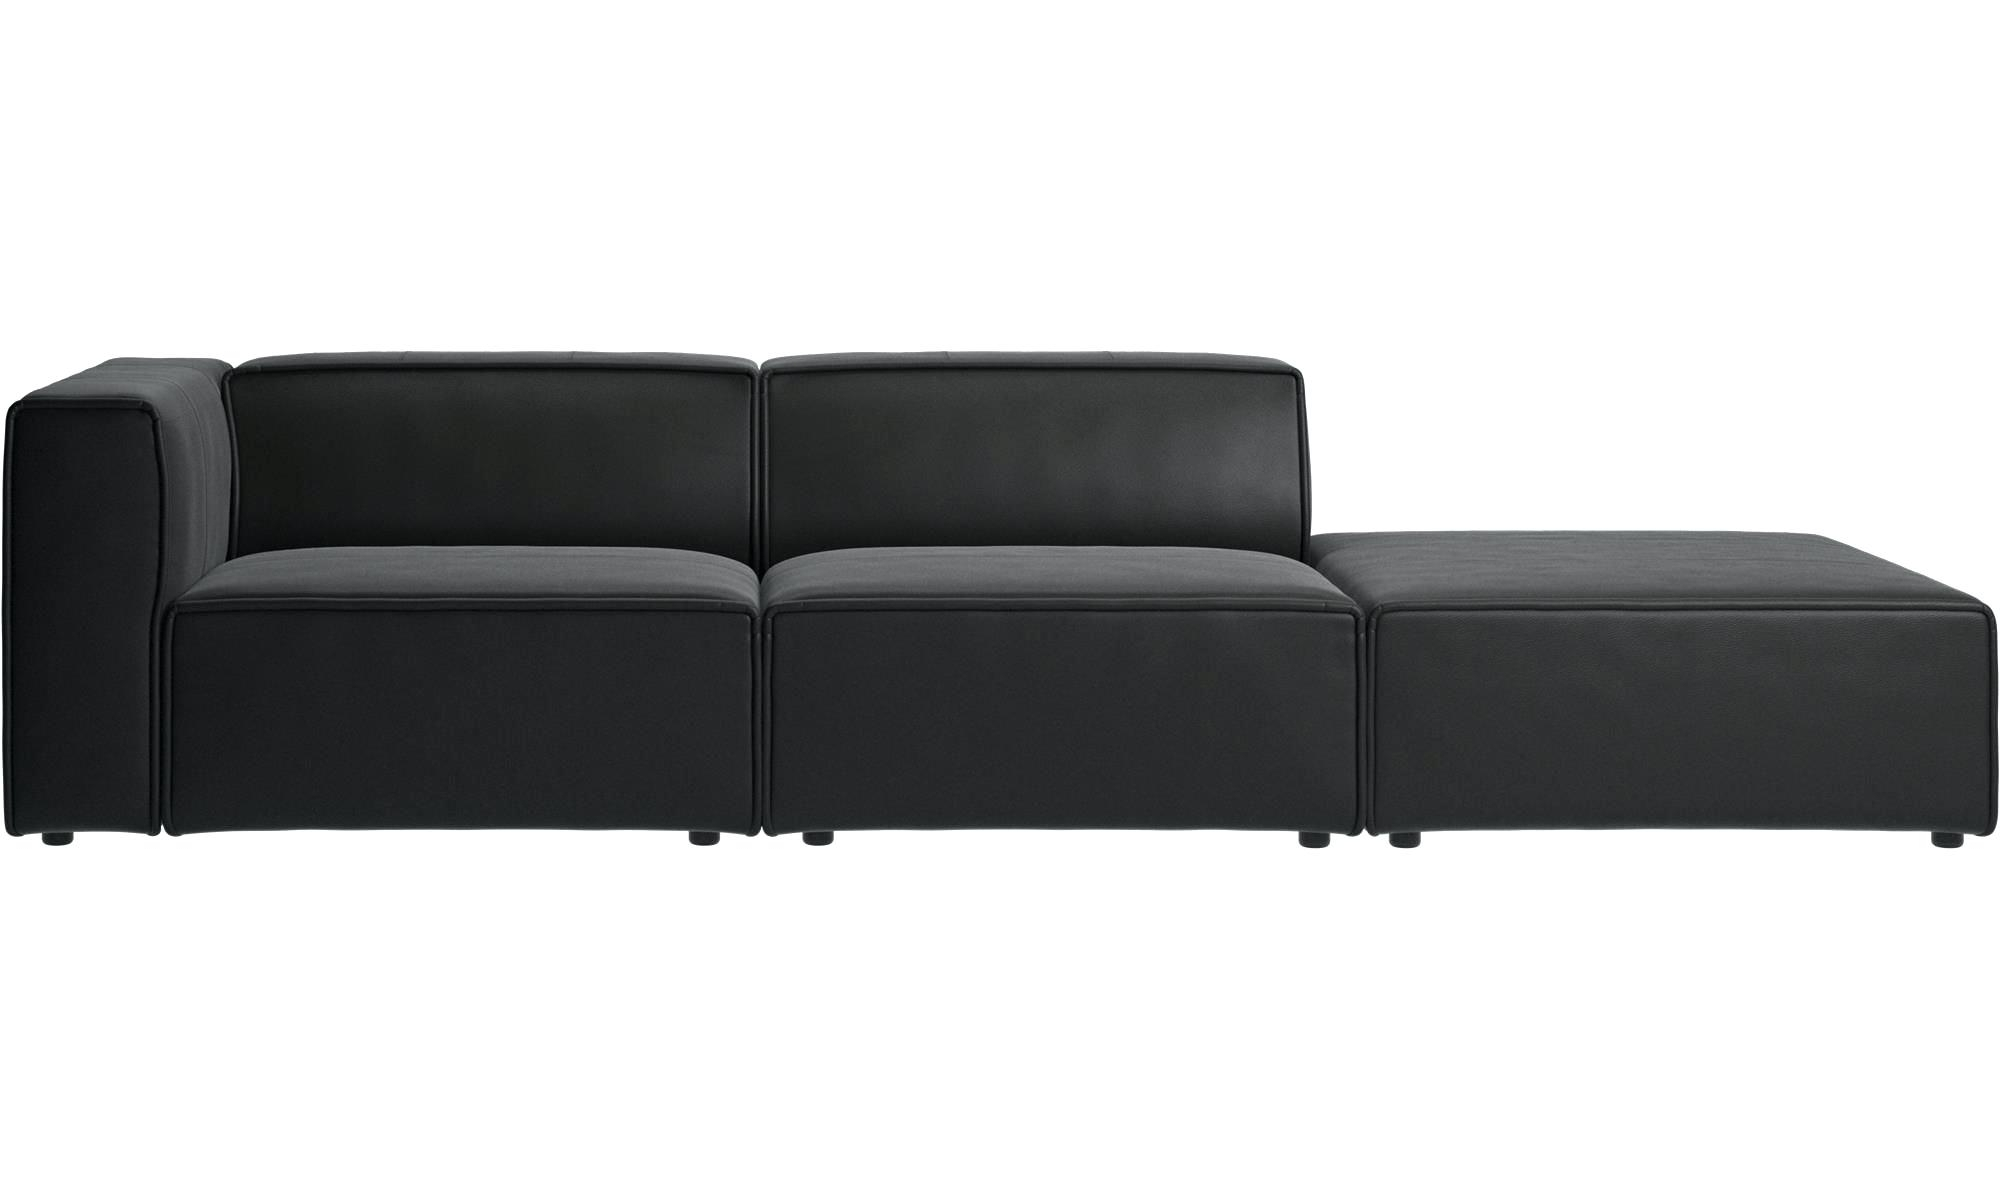 Most Popular Russ Sofa Bed With Chaise – Mariaalcocer In Russ Sofa Beds With Chaise (View 6 of 15)